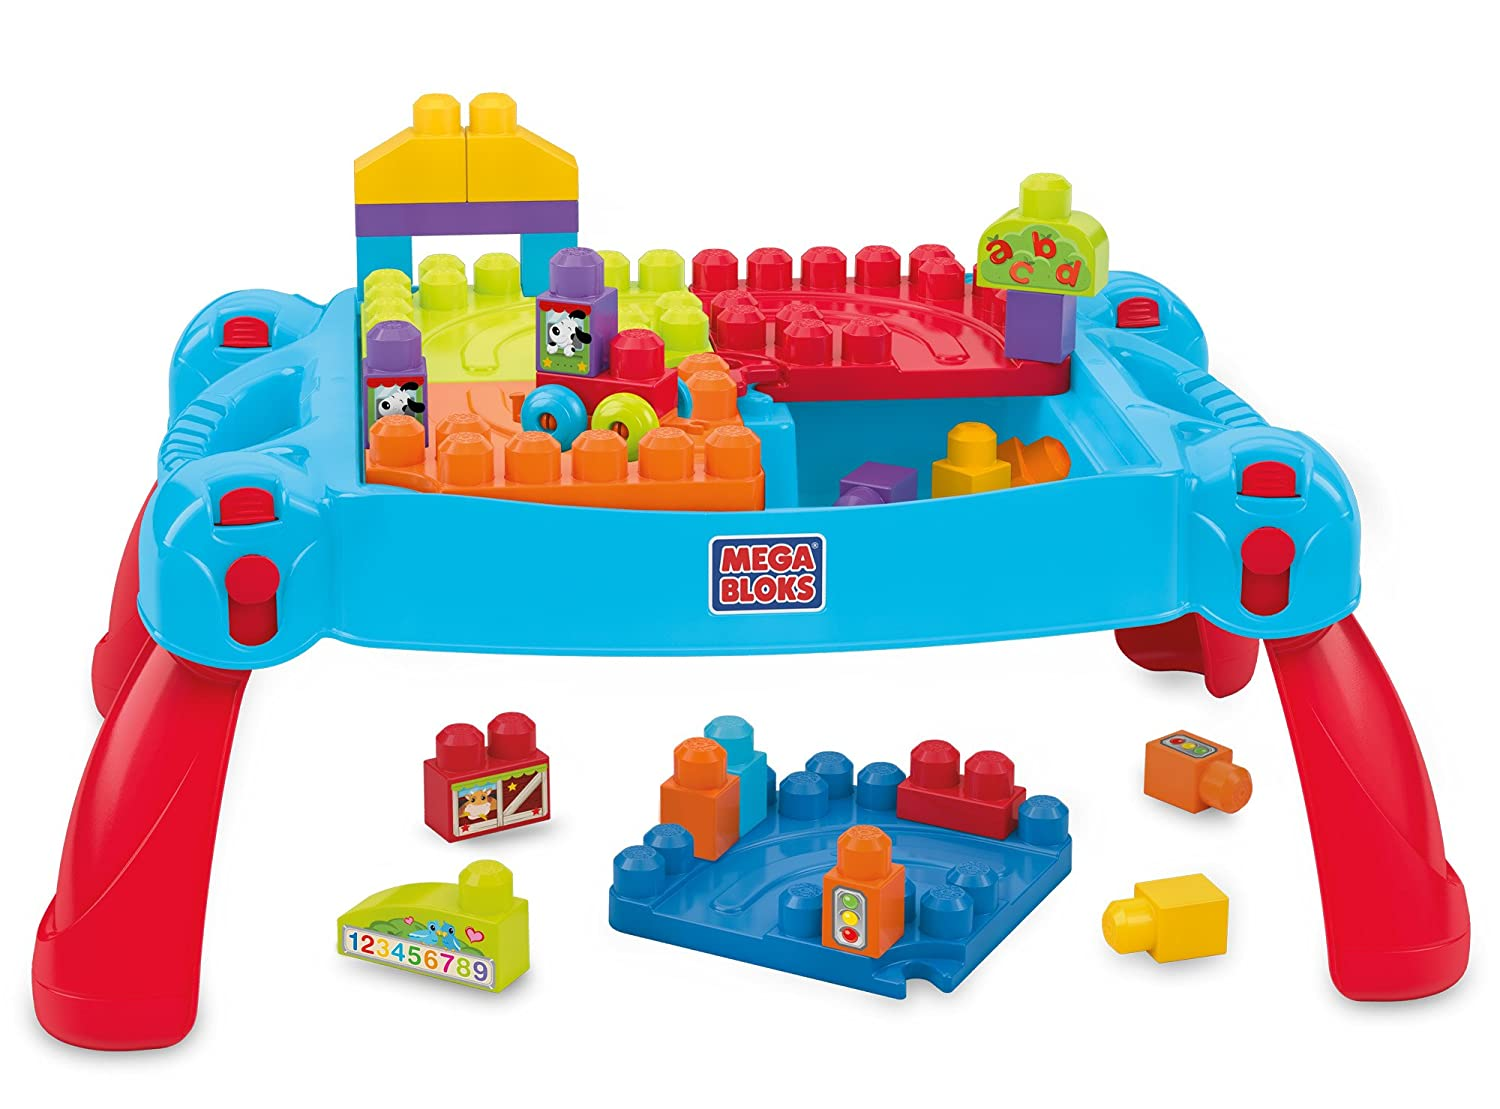 Best Gifts And Toys For 1 Year Old Boys